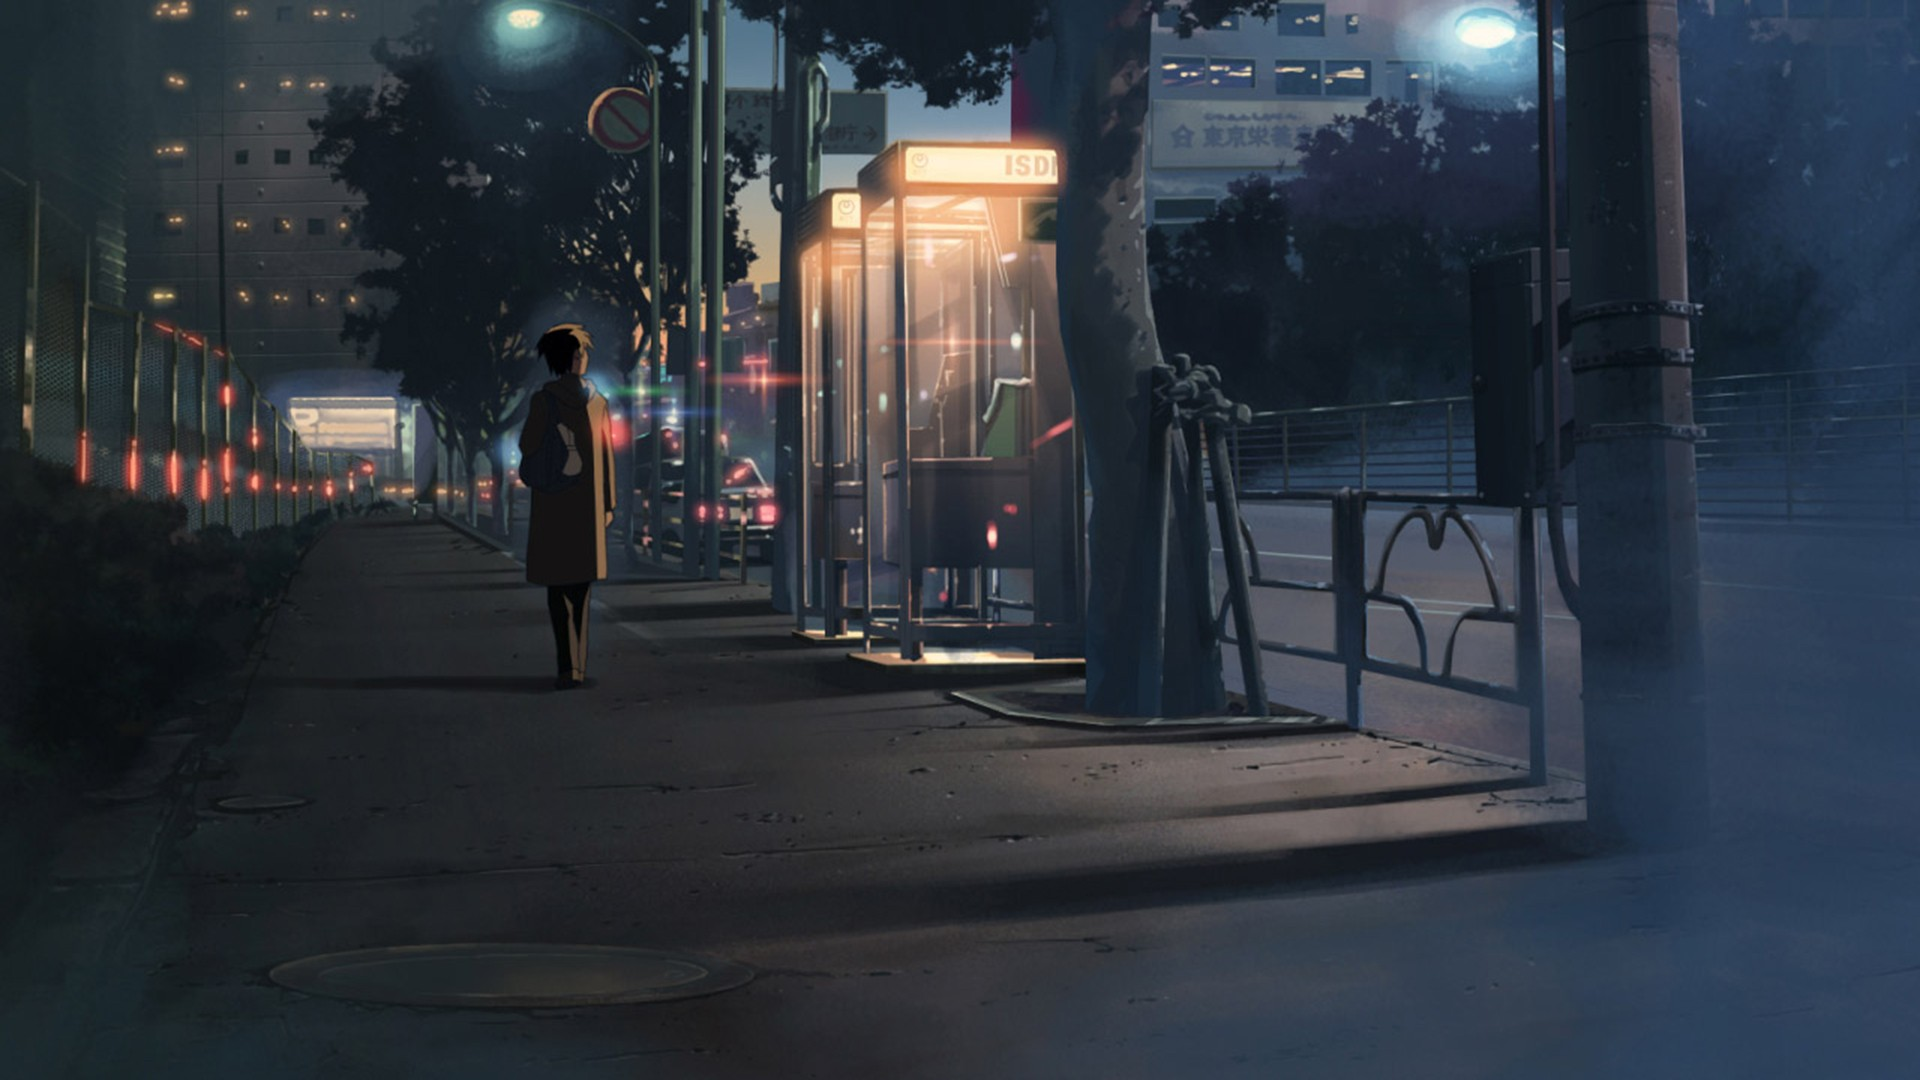 Anime-1920x1080-night-city-Centimeters-Per-Second-wallpaper-wpc9202446